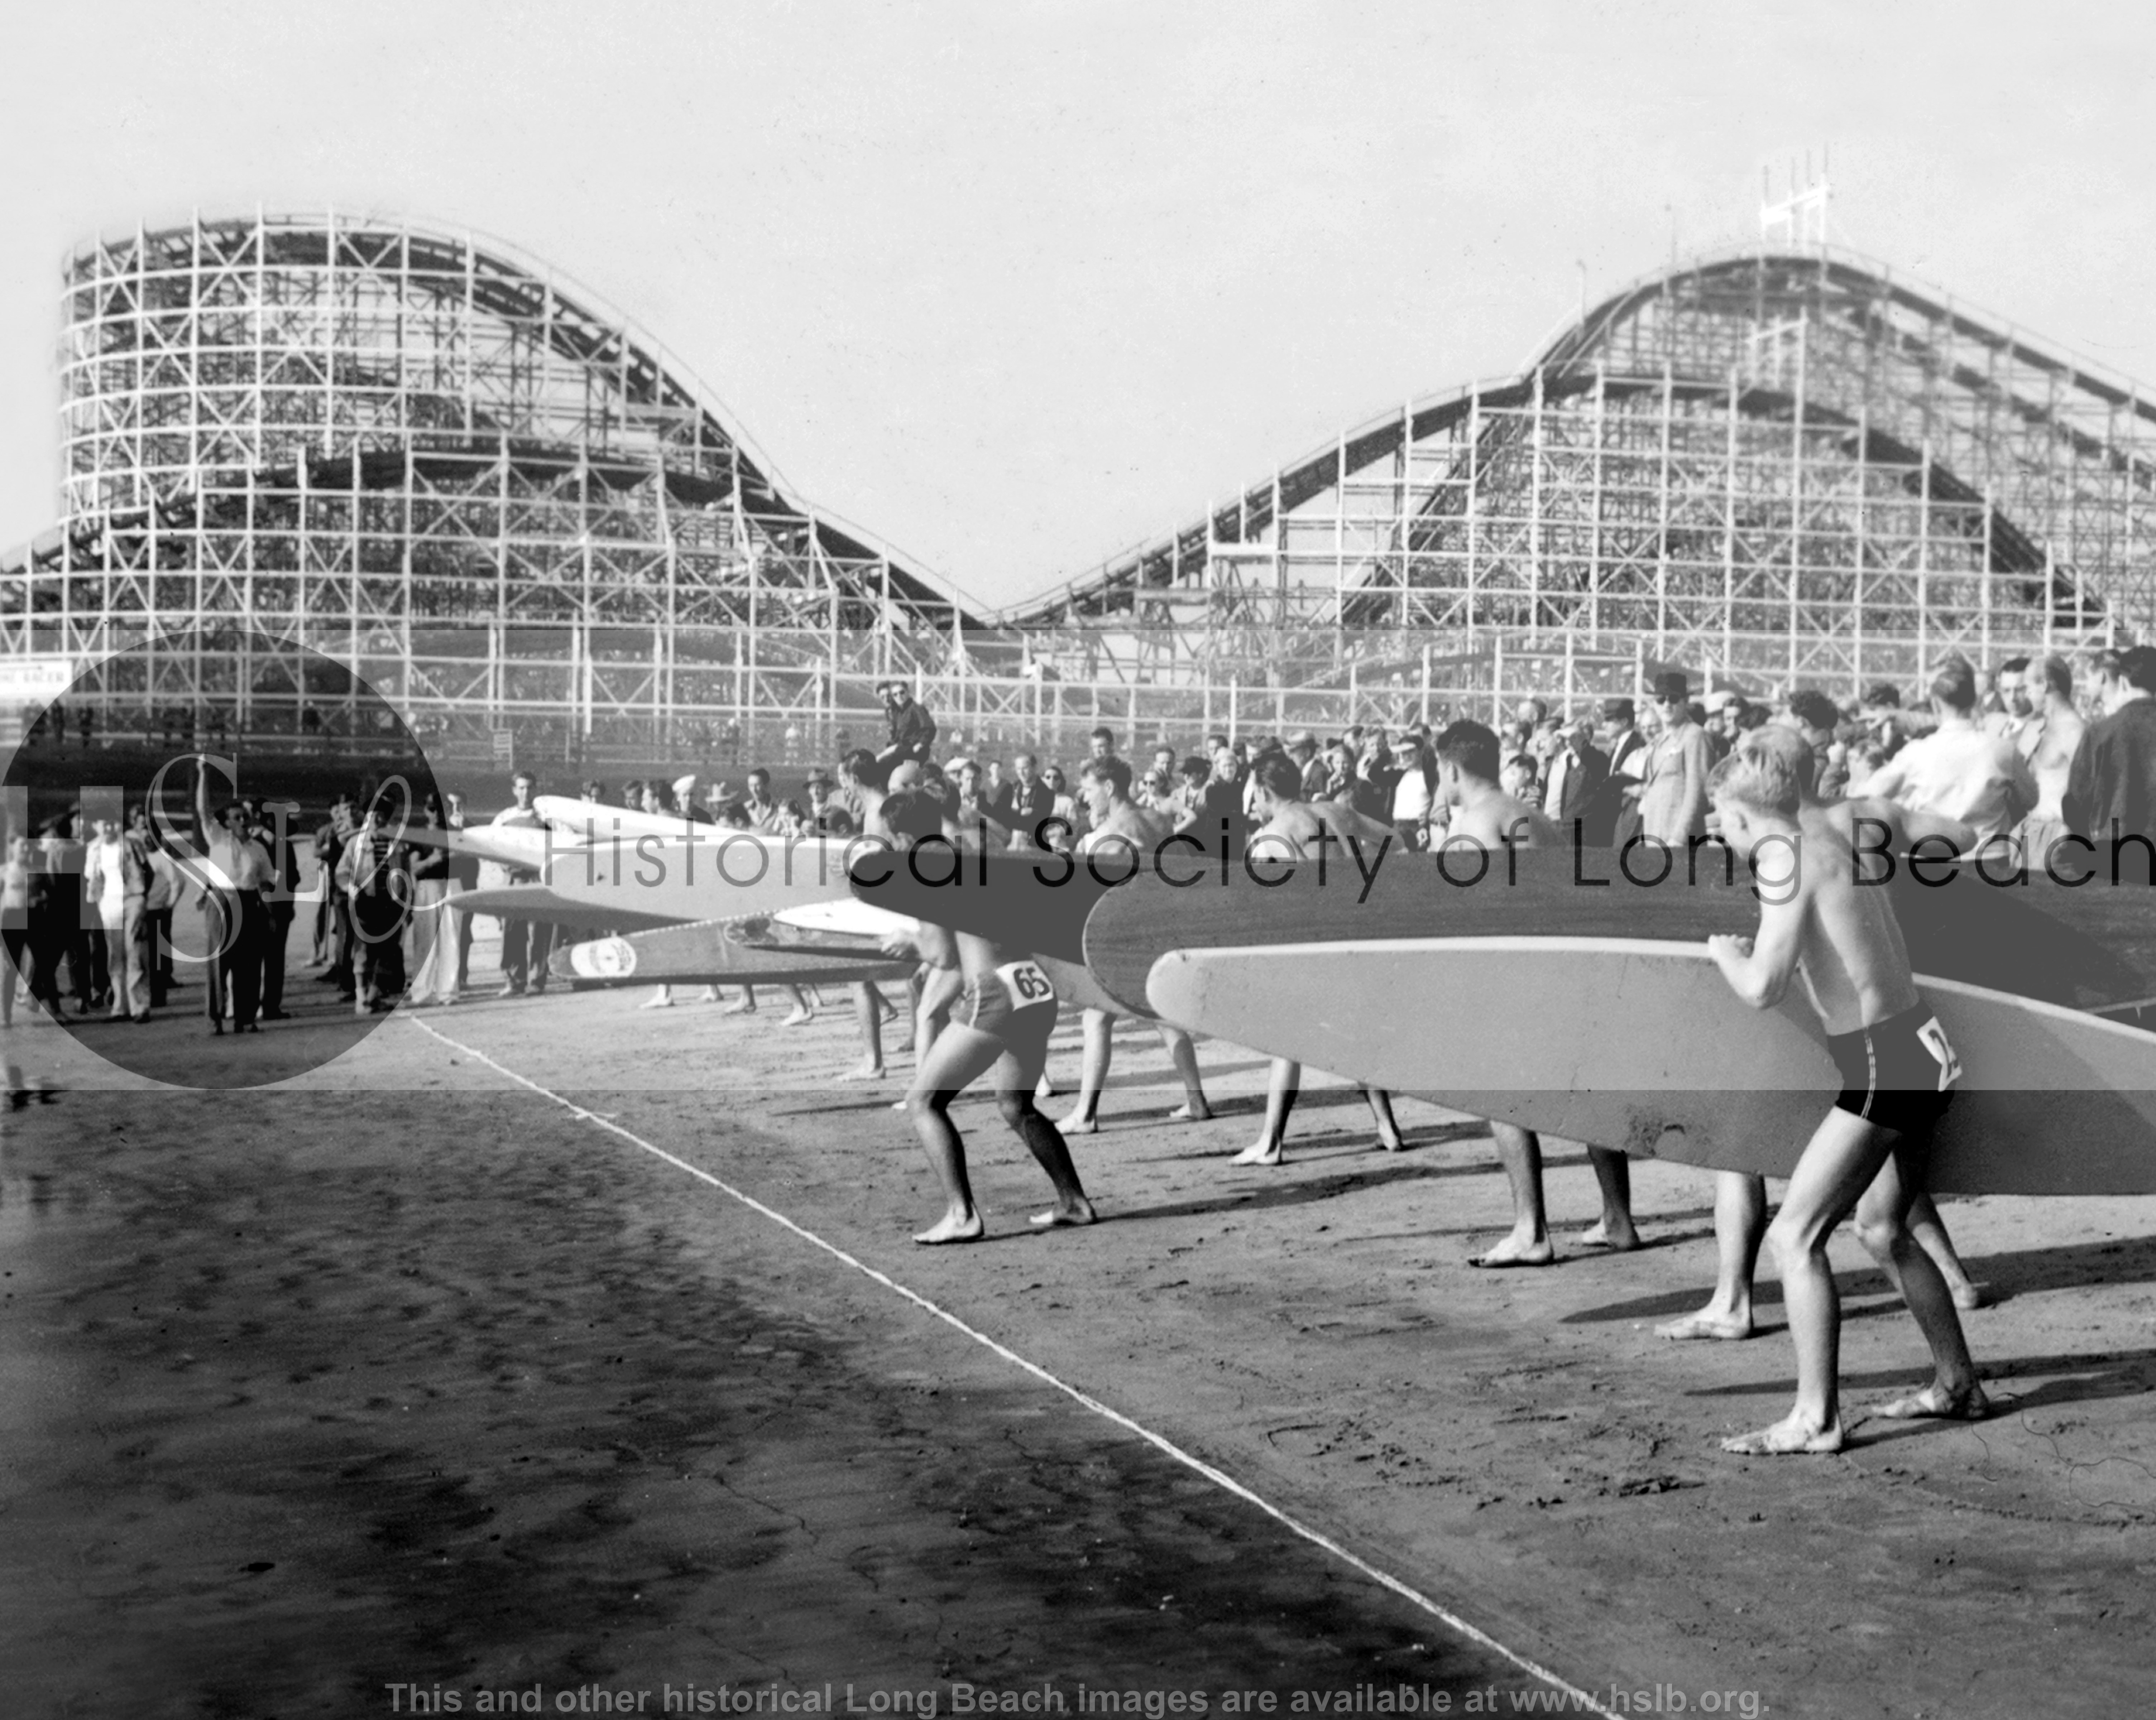 Surfing ready for the gun, 1938 vintage photograph